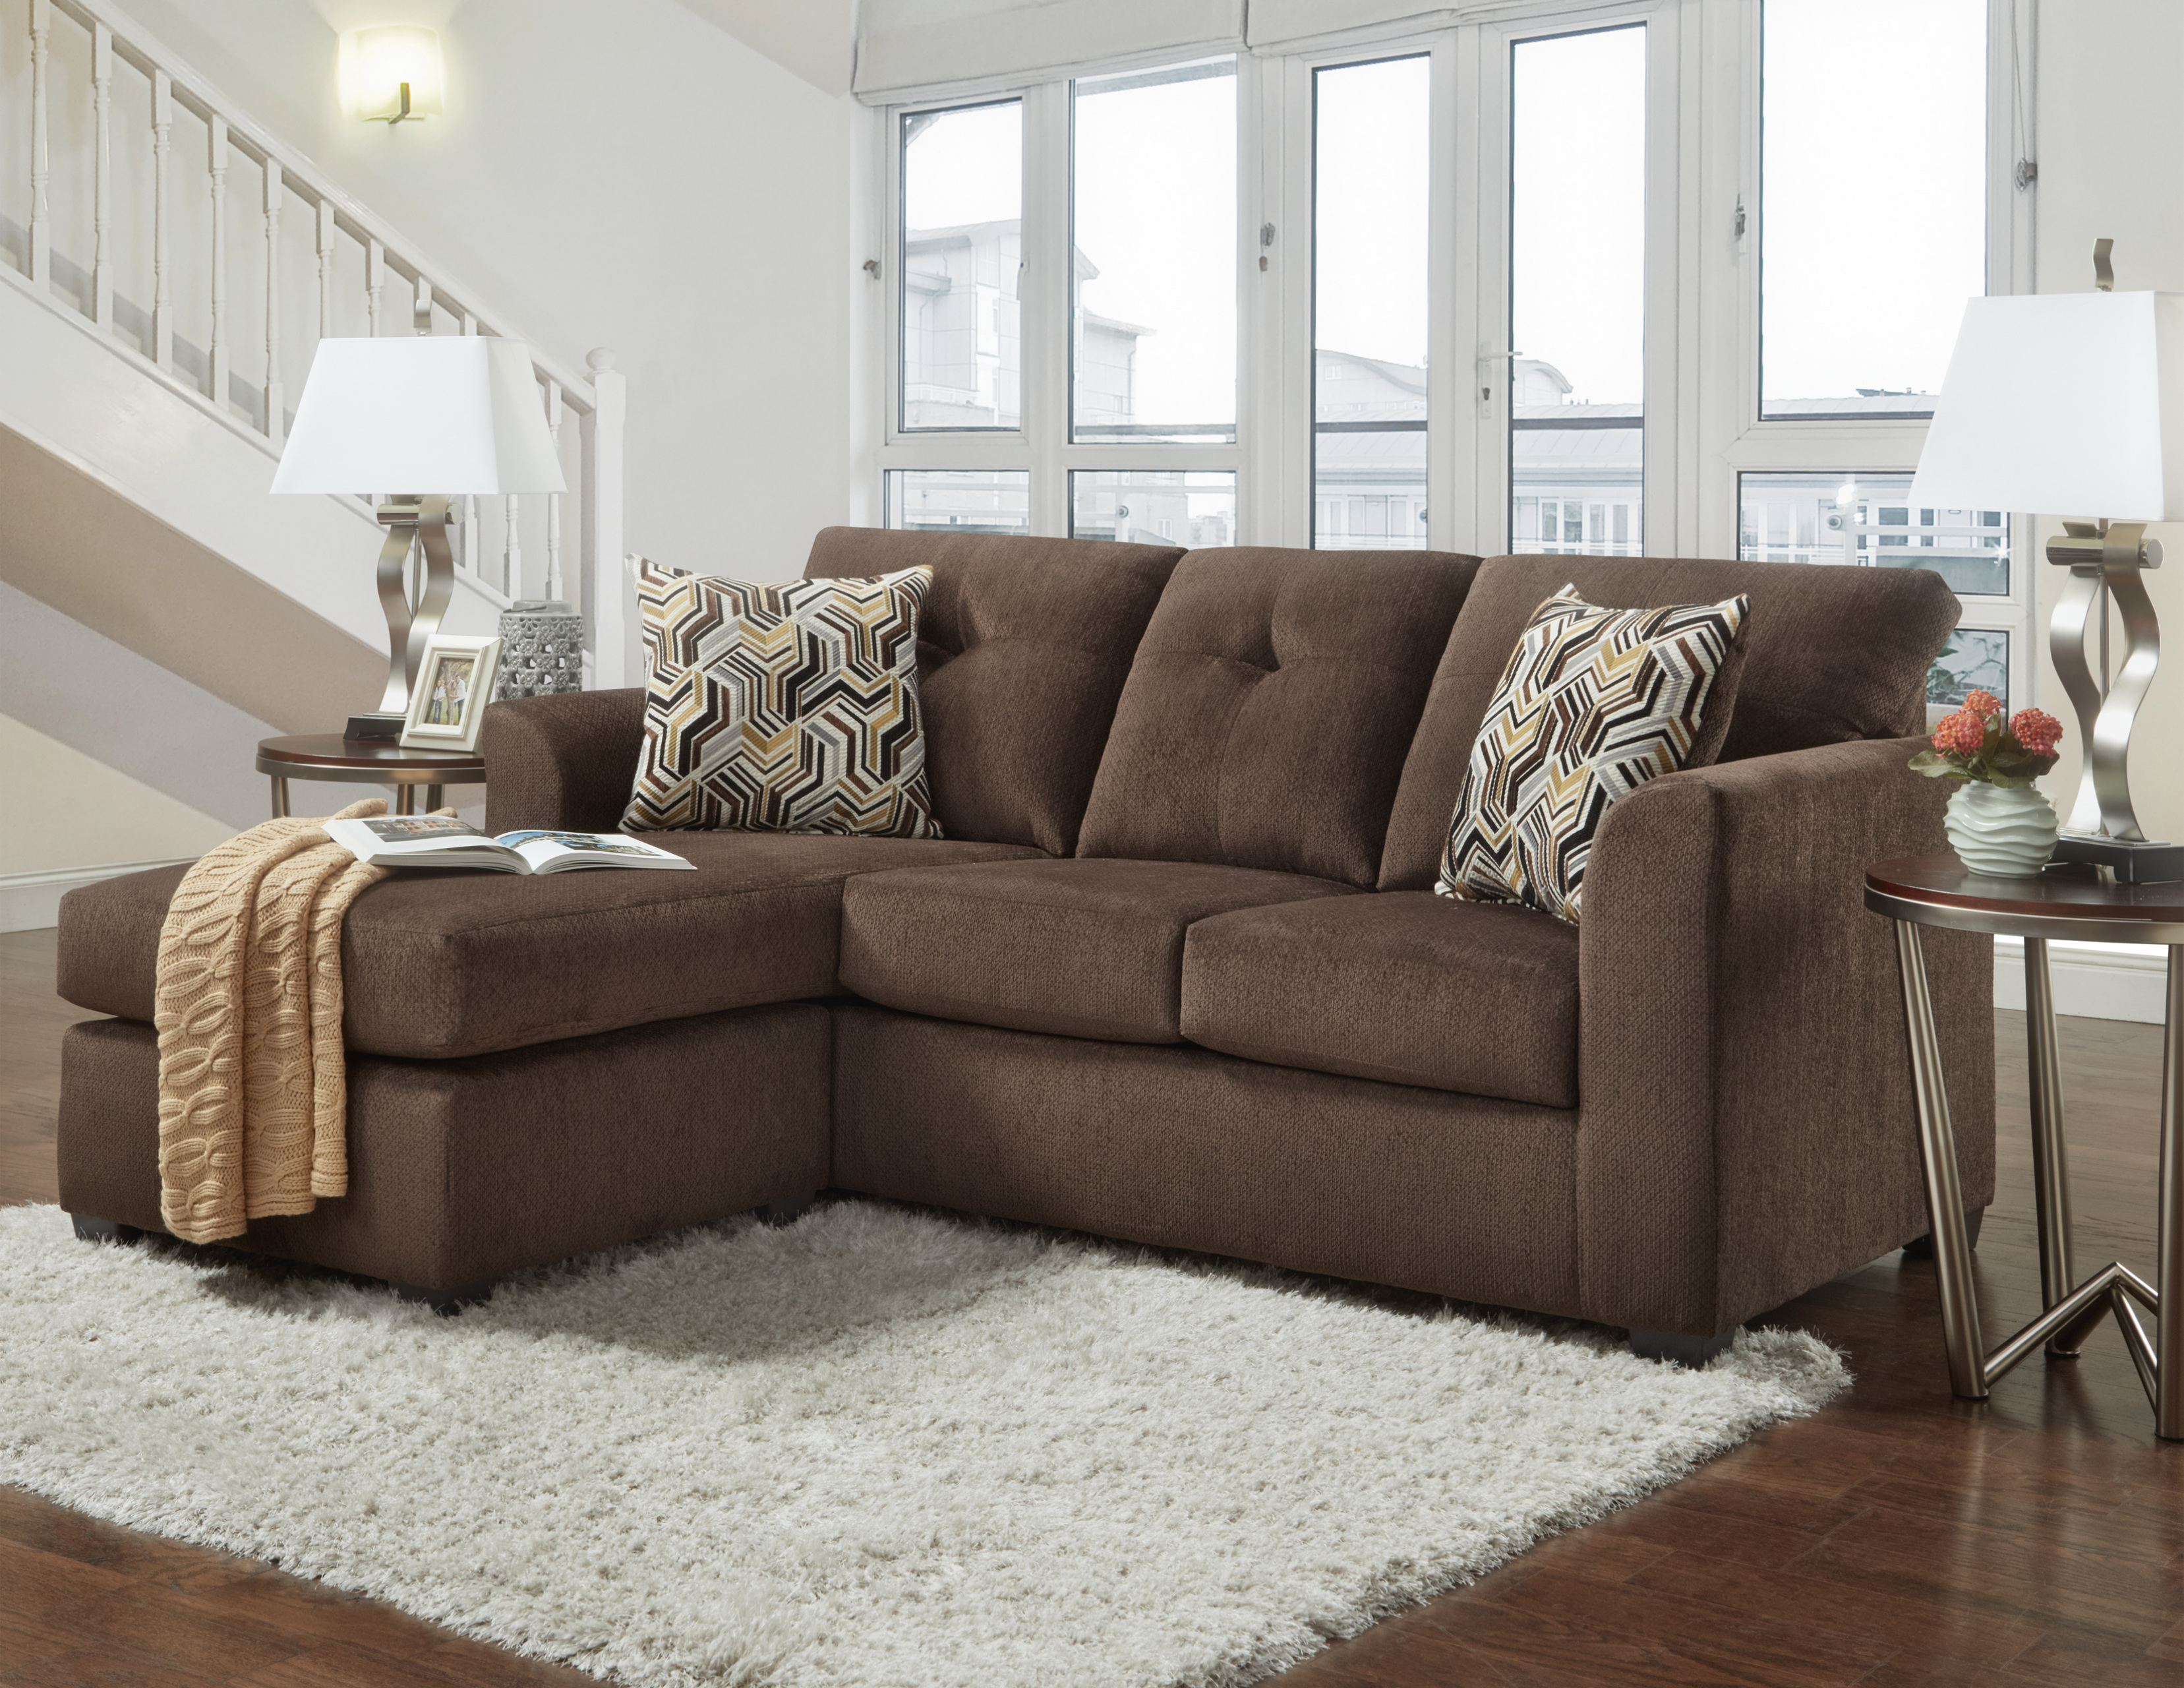 Kelly Chocolate Sofa With Chaise (FREE RECLINER INCLUDED!) LIMITED TIME  OFFER